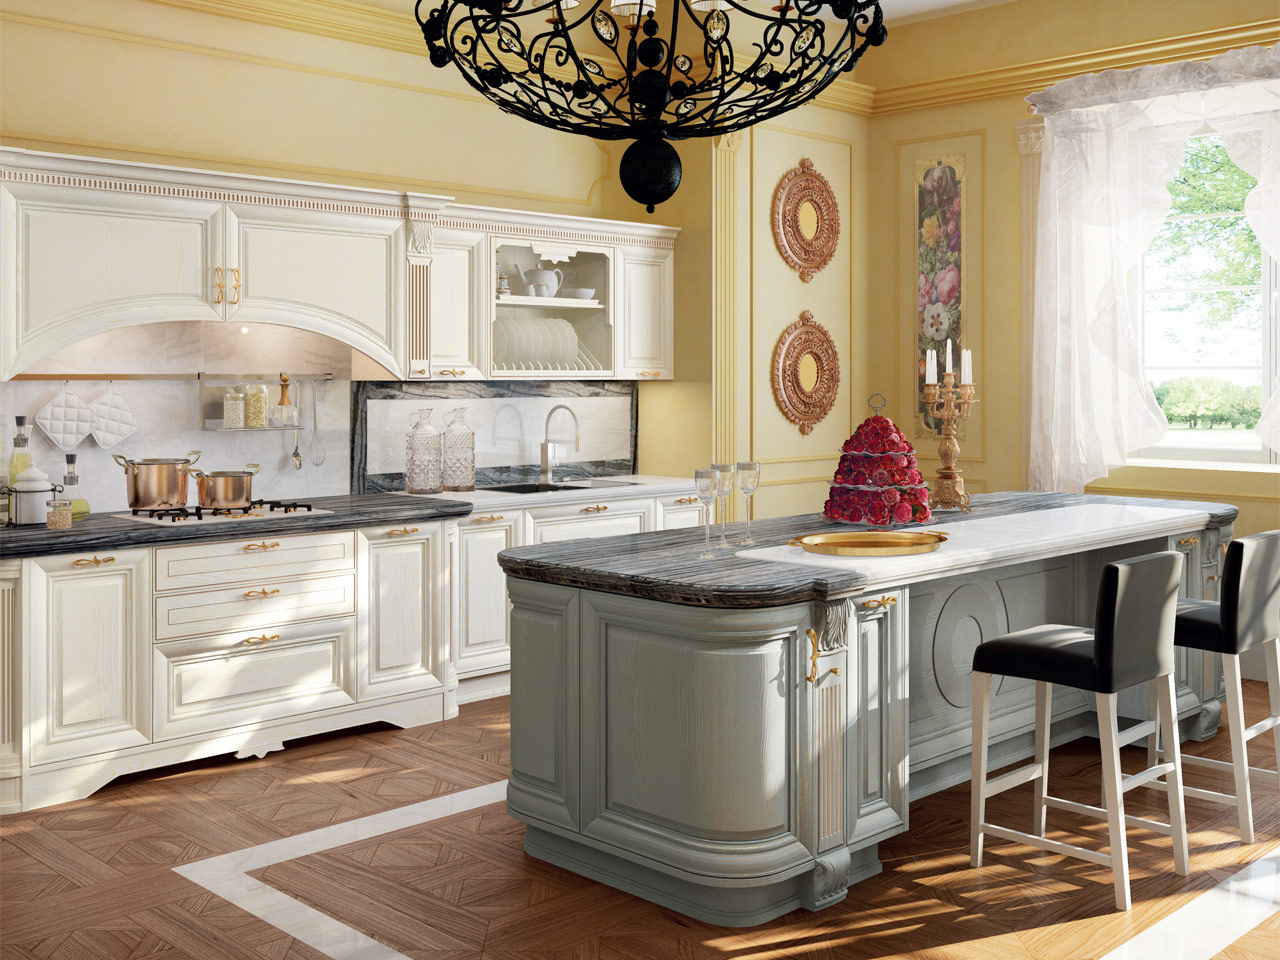 Cucina decapata con isola collezione pantheon by lube industries s r l - Cucina pantheon lube prezzo ...